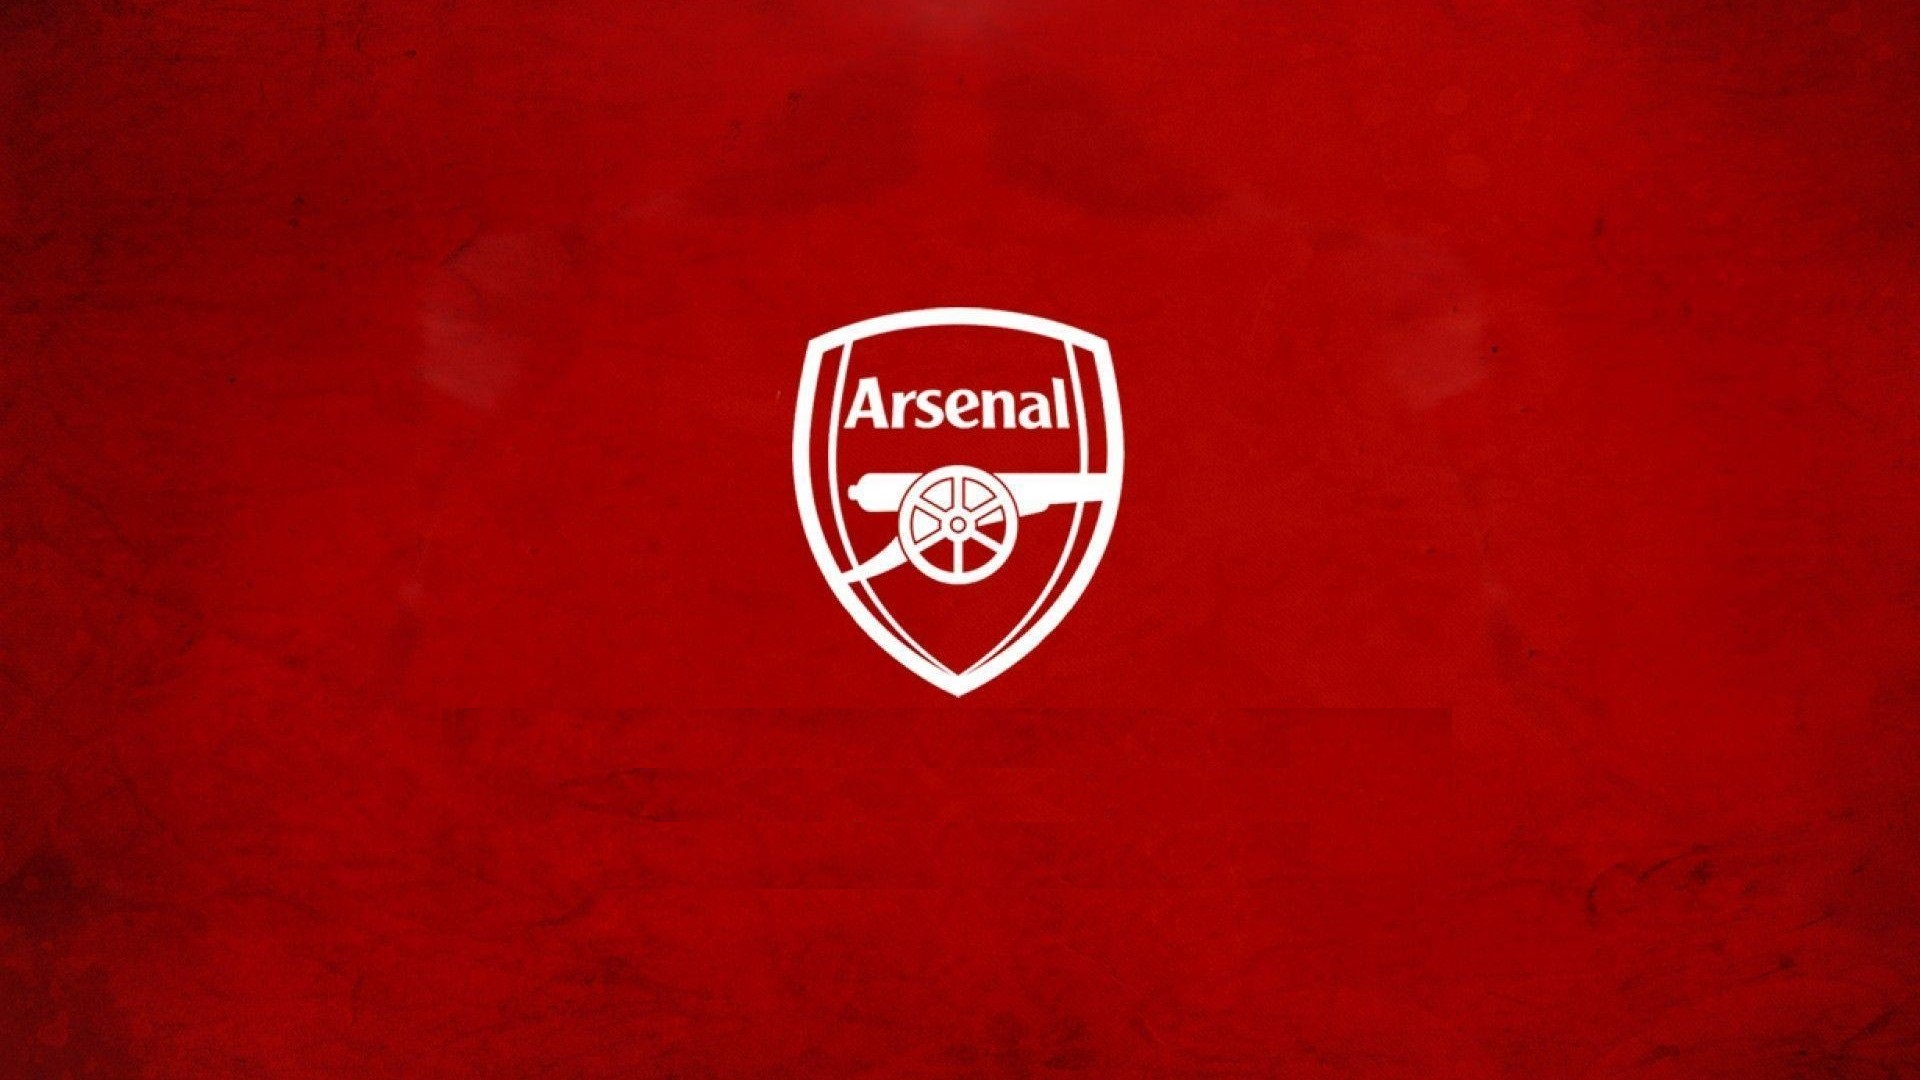 hd backgrounds arsenal fc 2021